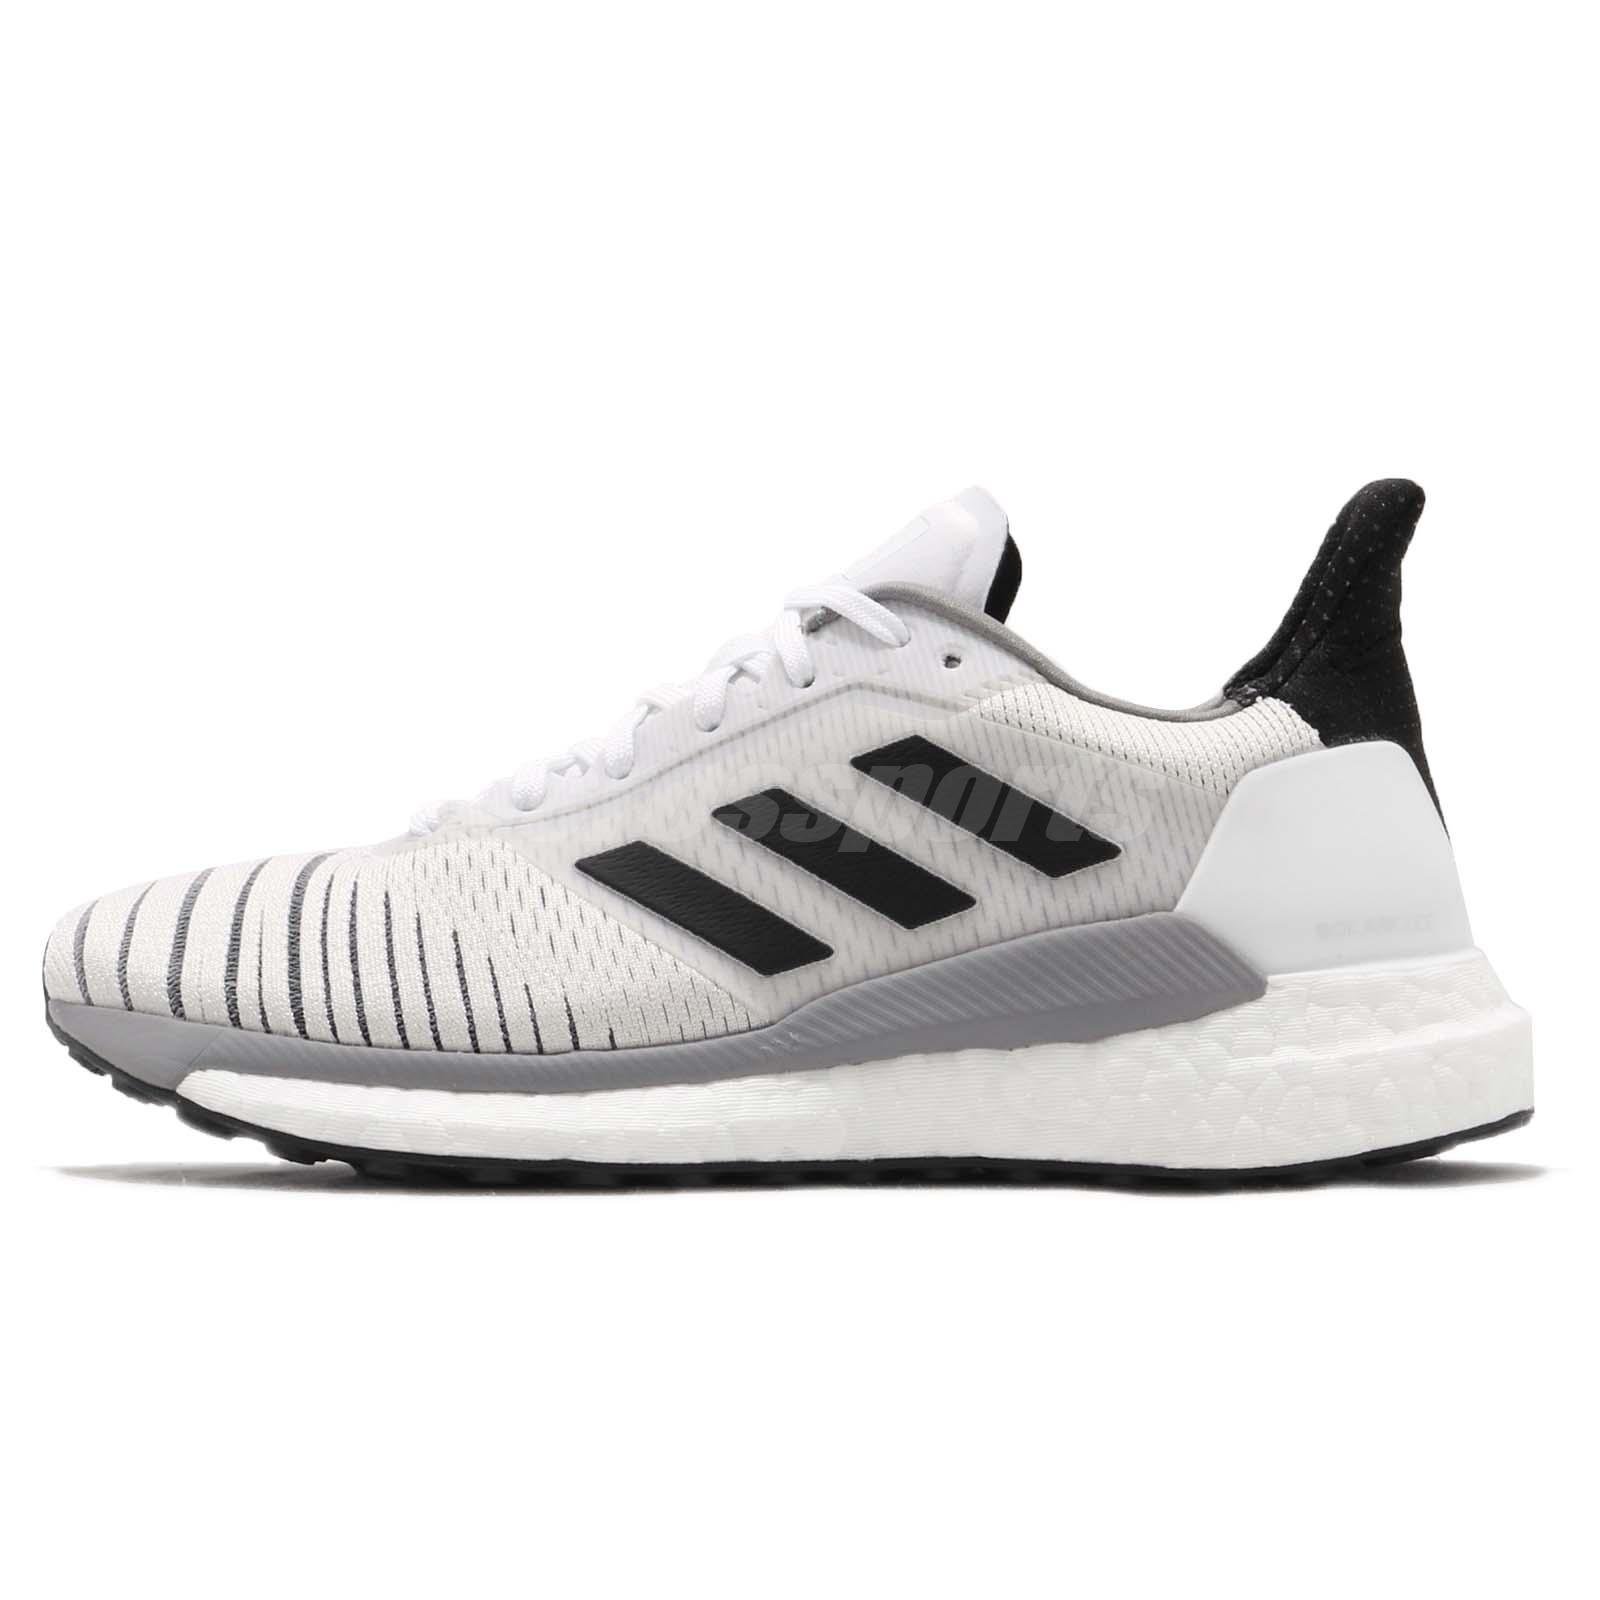 low priced 37e1d 4315e adidas Solar Glide W Boost White Black Grey Women Running Shoes Sneakers  BB6630